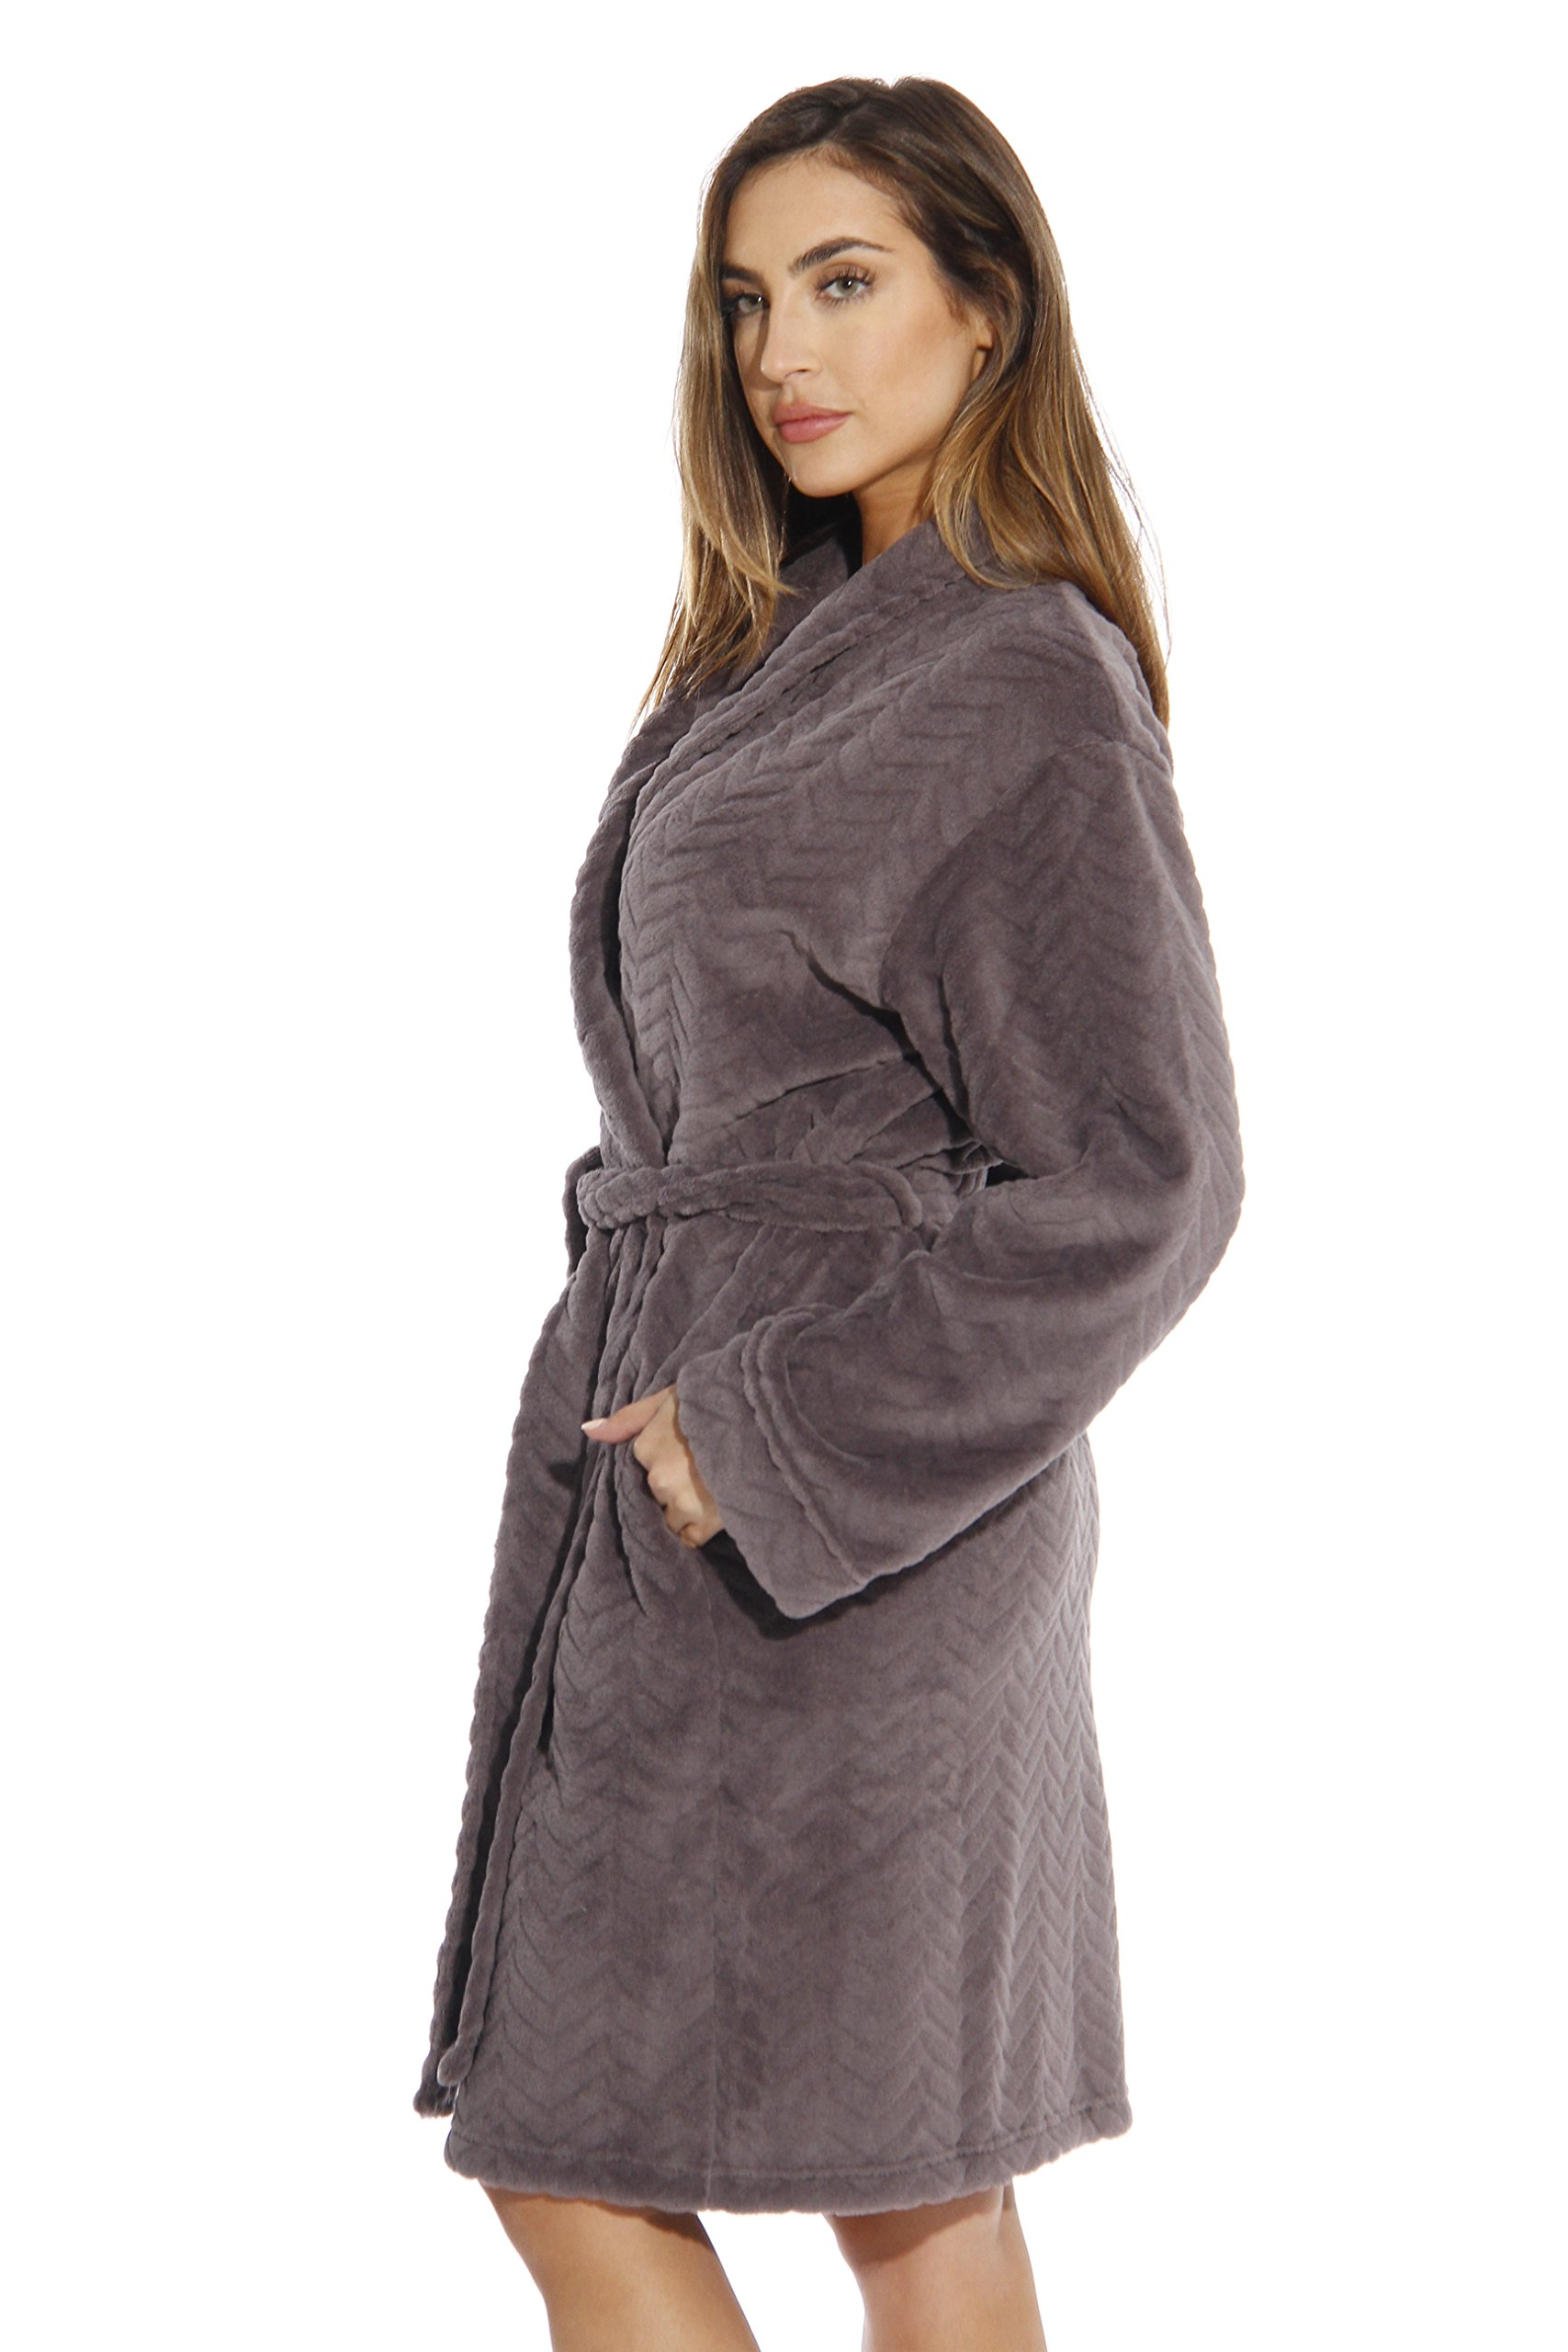 6312-Charcoal-M Just Love Kimono Robe / Bath Robes for Women by Just Love (Image #2)